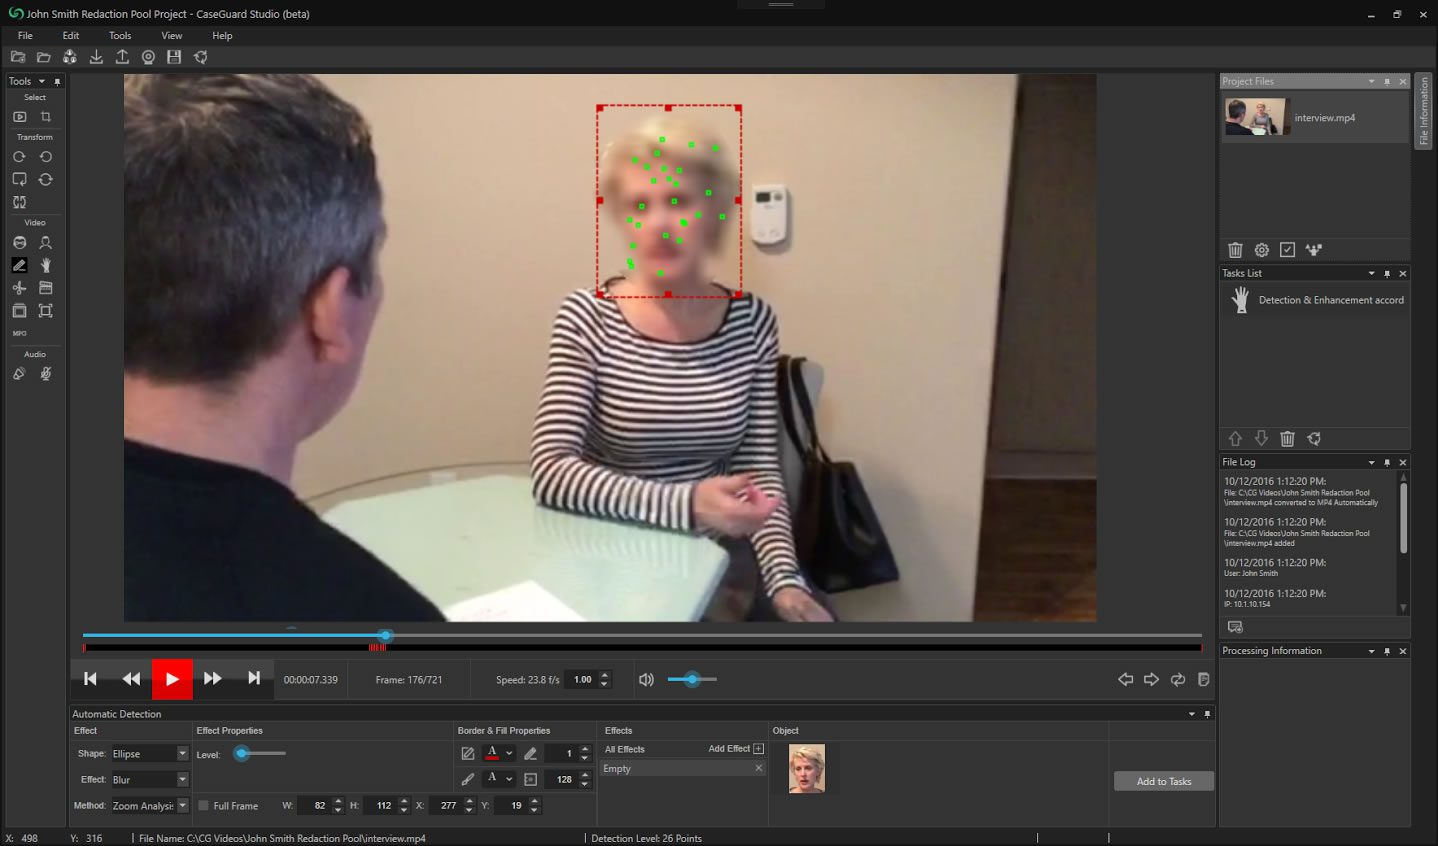 Video Redaction and Enhancement Software